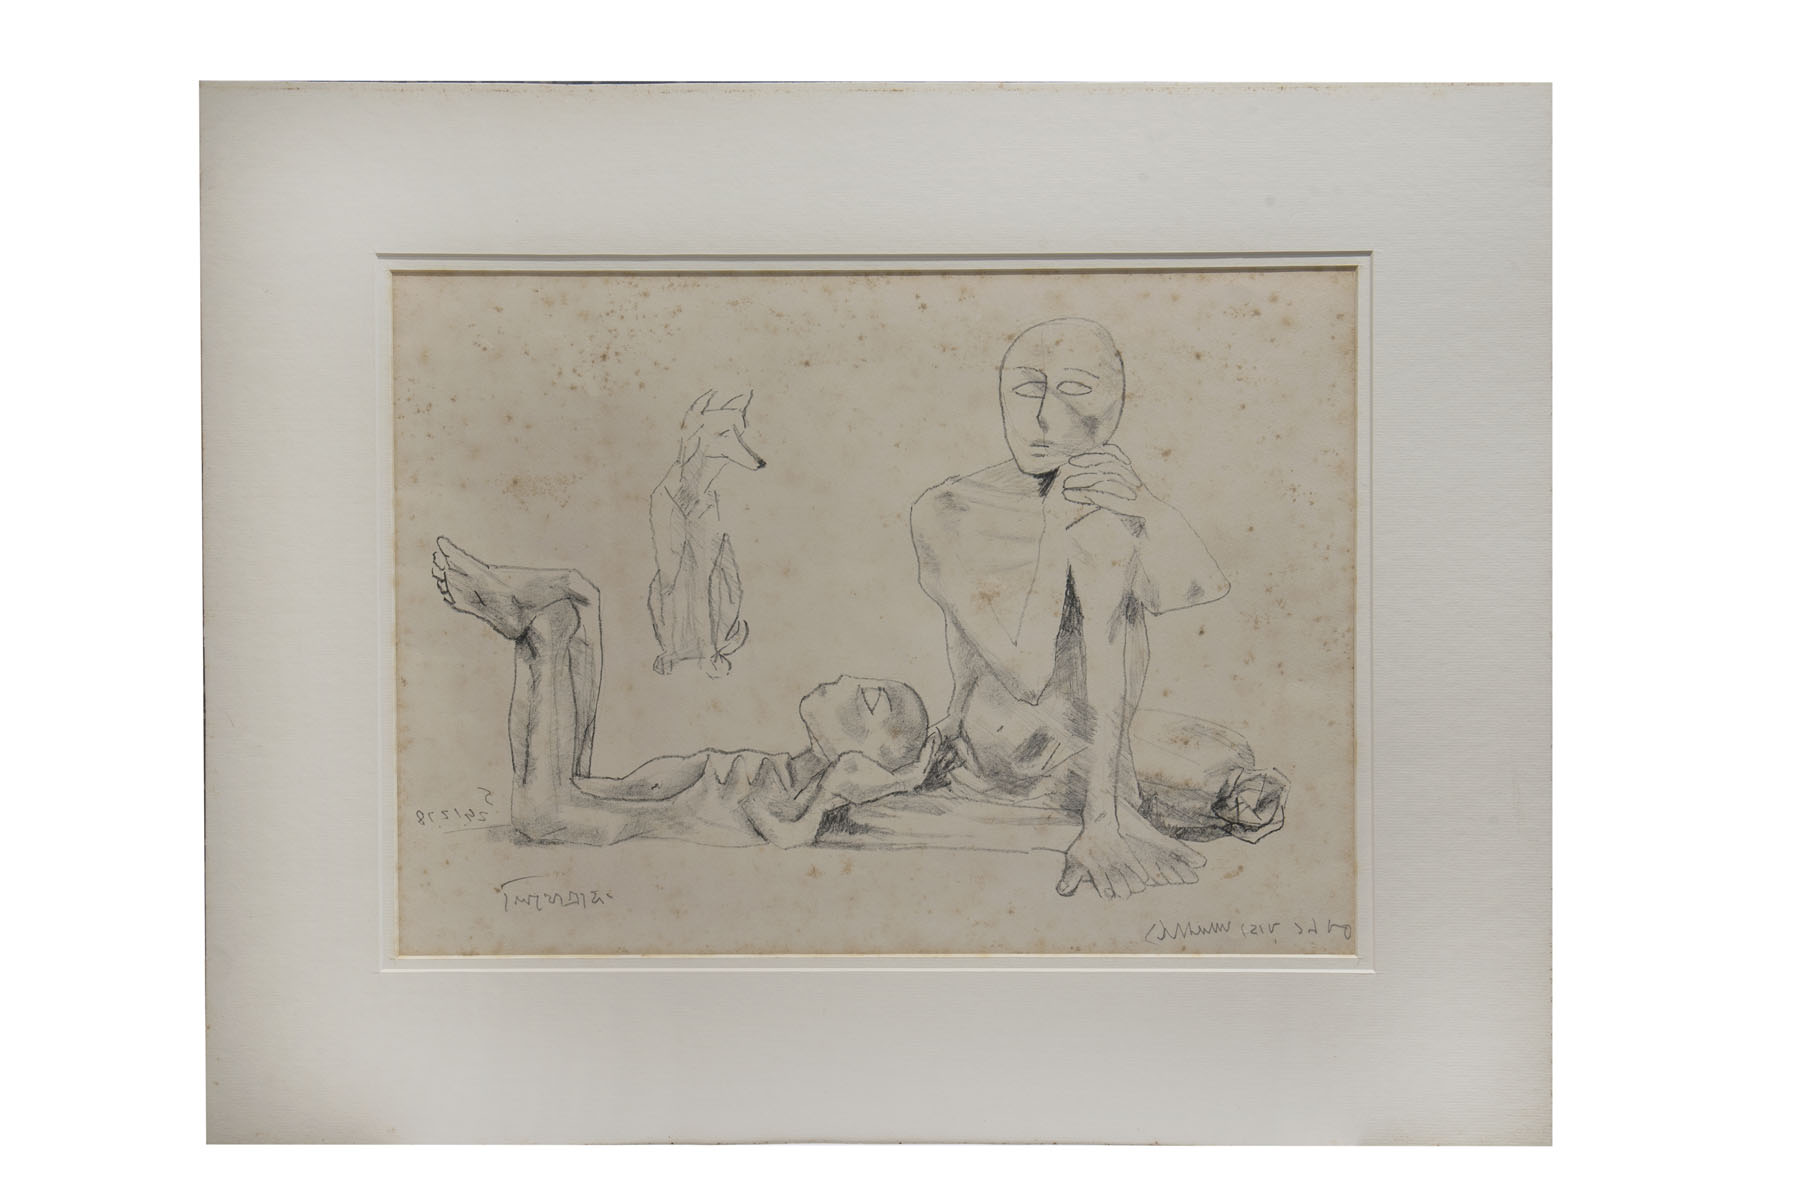 UNTITLED (Figures with dog)